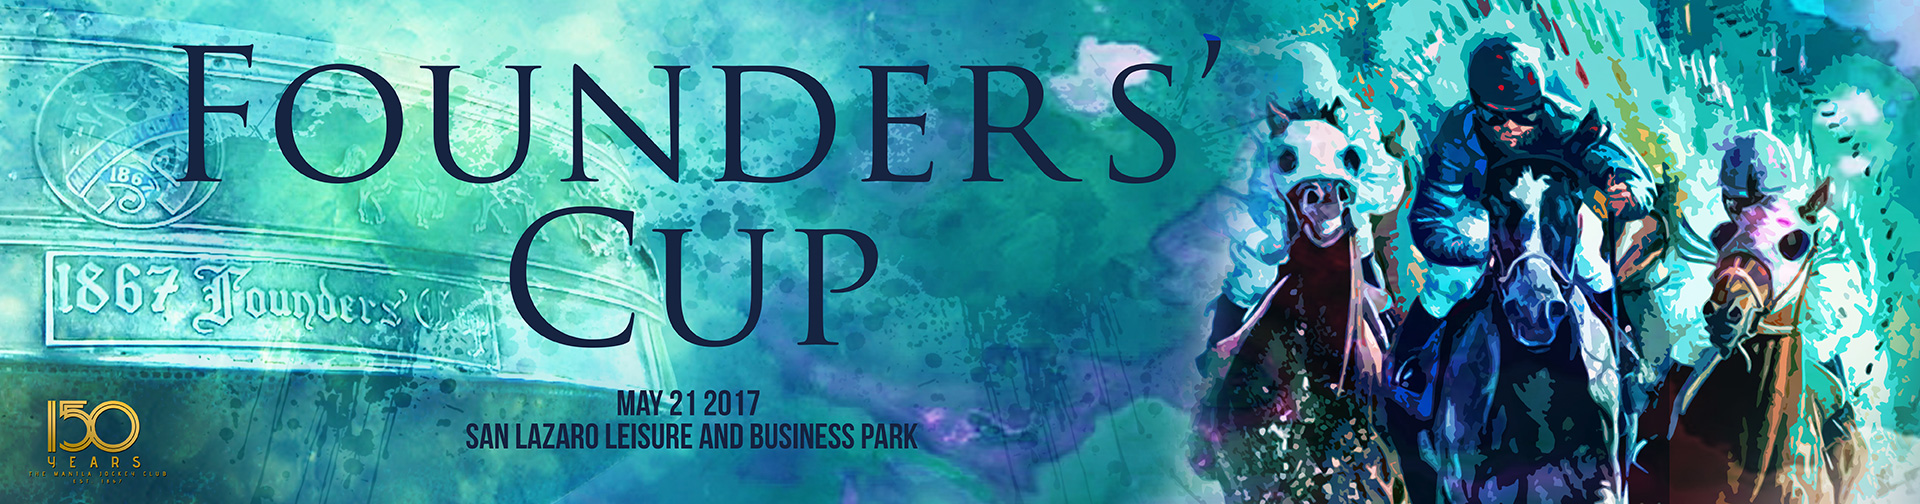 Founders' Cup